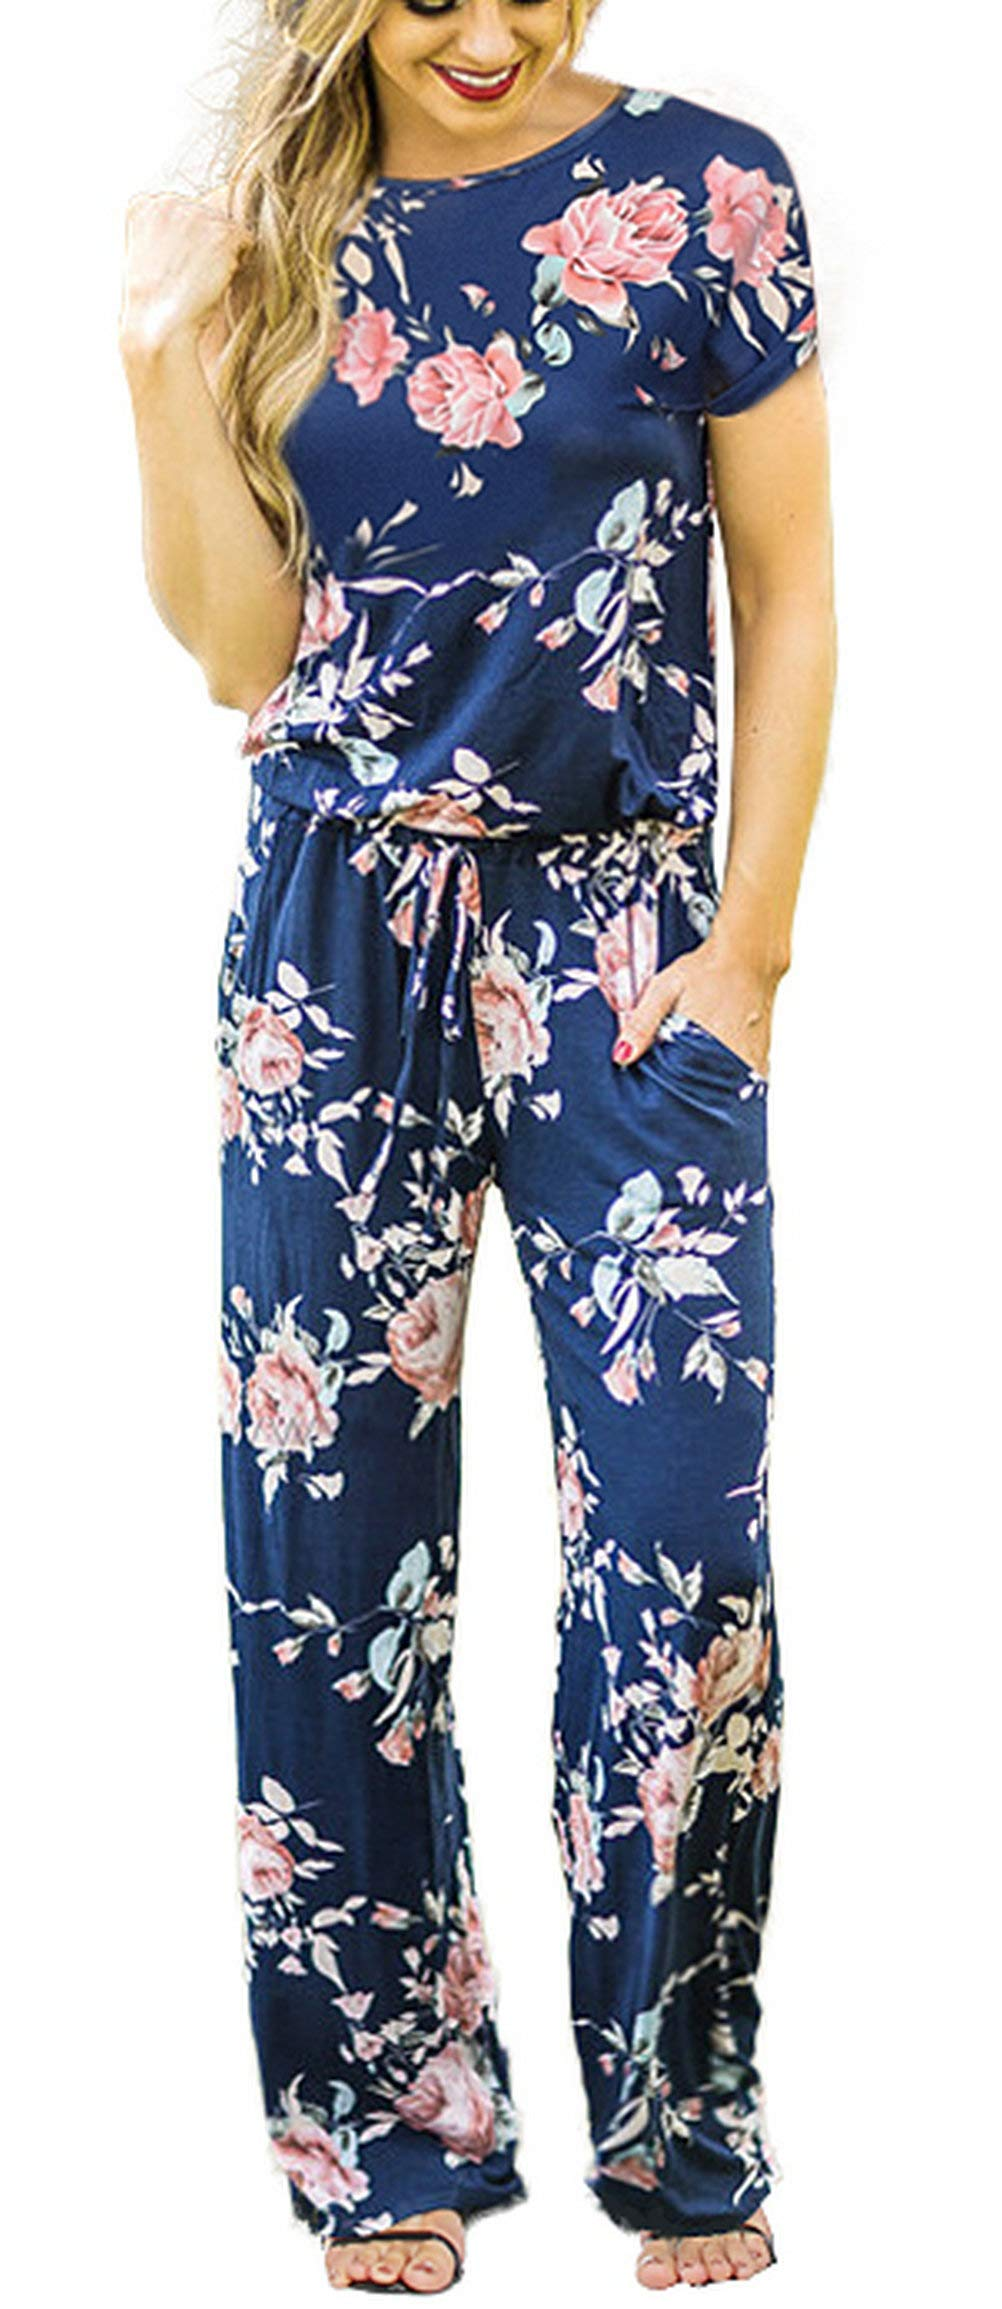 RichCoco Women's Floral Printed Jumpsuit Casual O Neck Loose Long Wide Legs Pants Jumpsuit Rompers with Pockets (Blue, L)